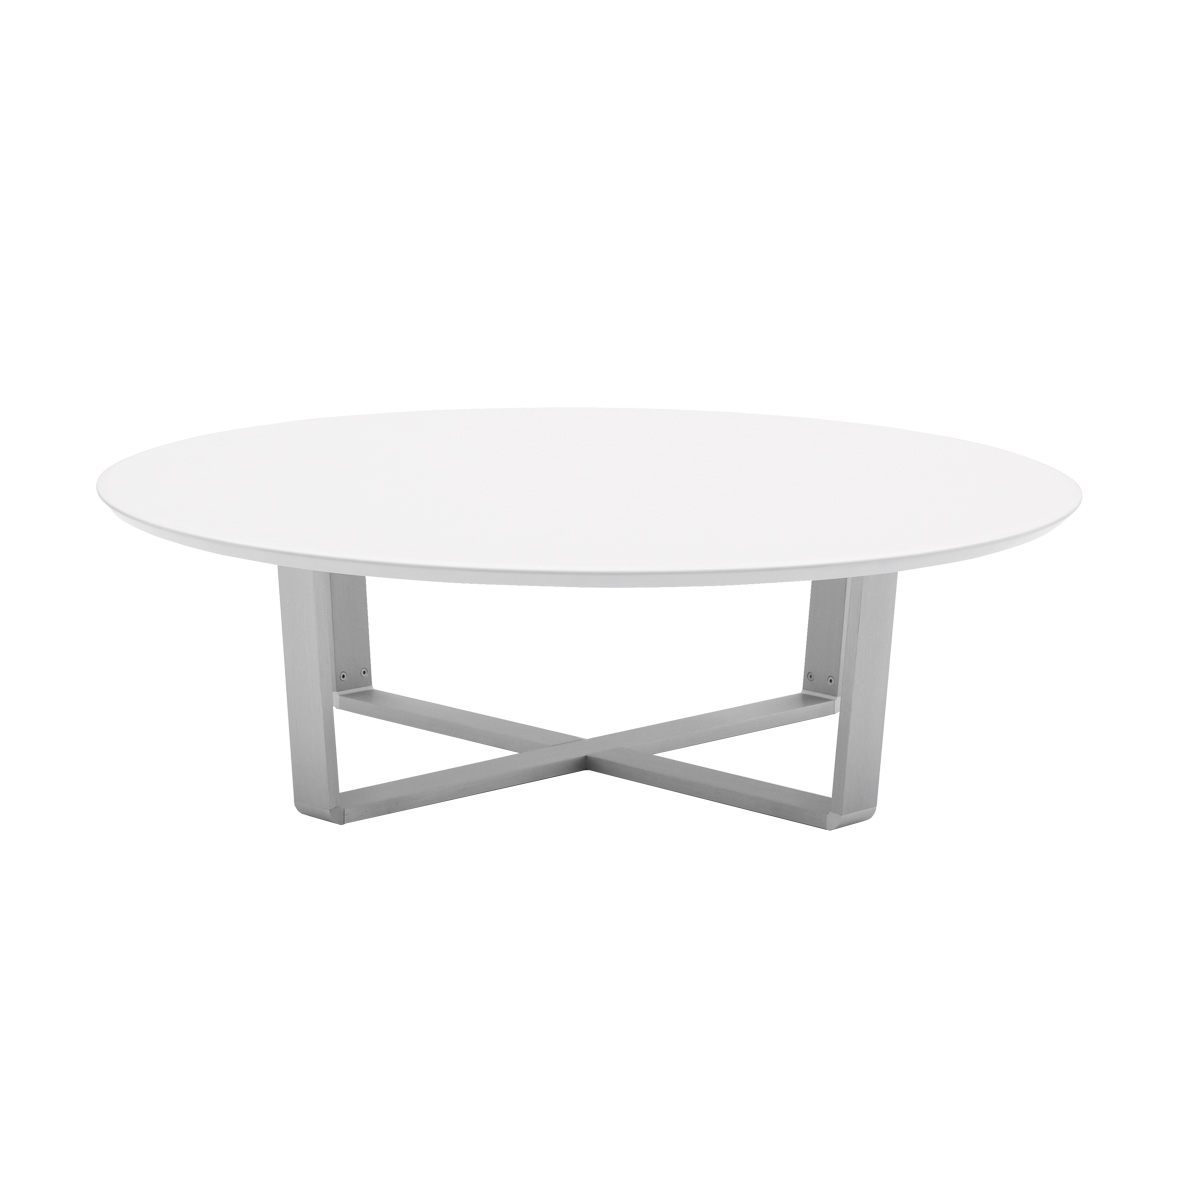 Cintura round coffee table beyond furniture What to put on a round coffee table